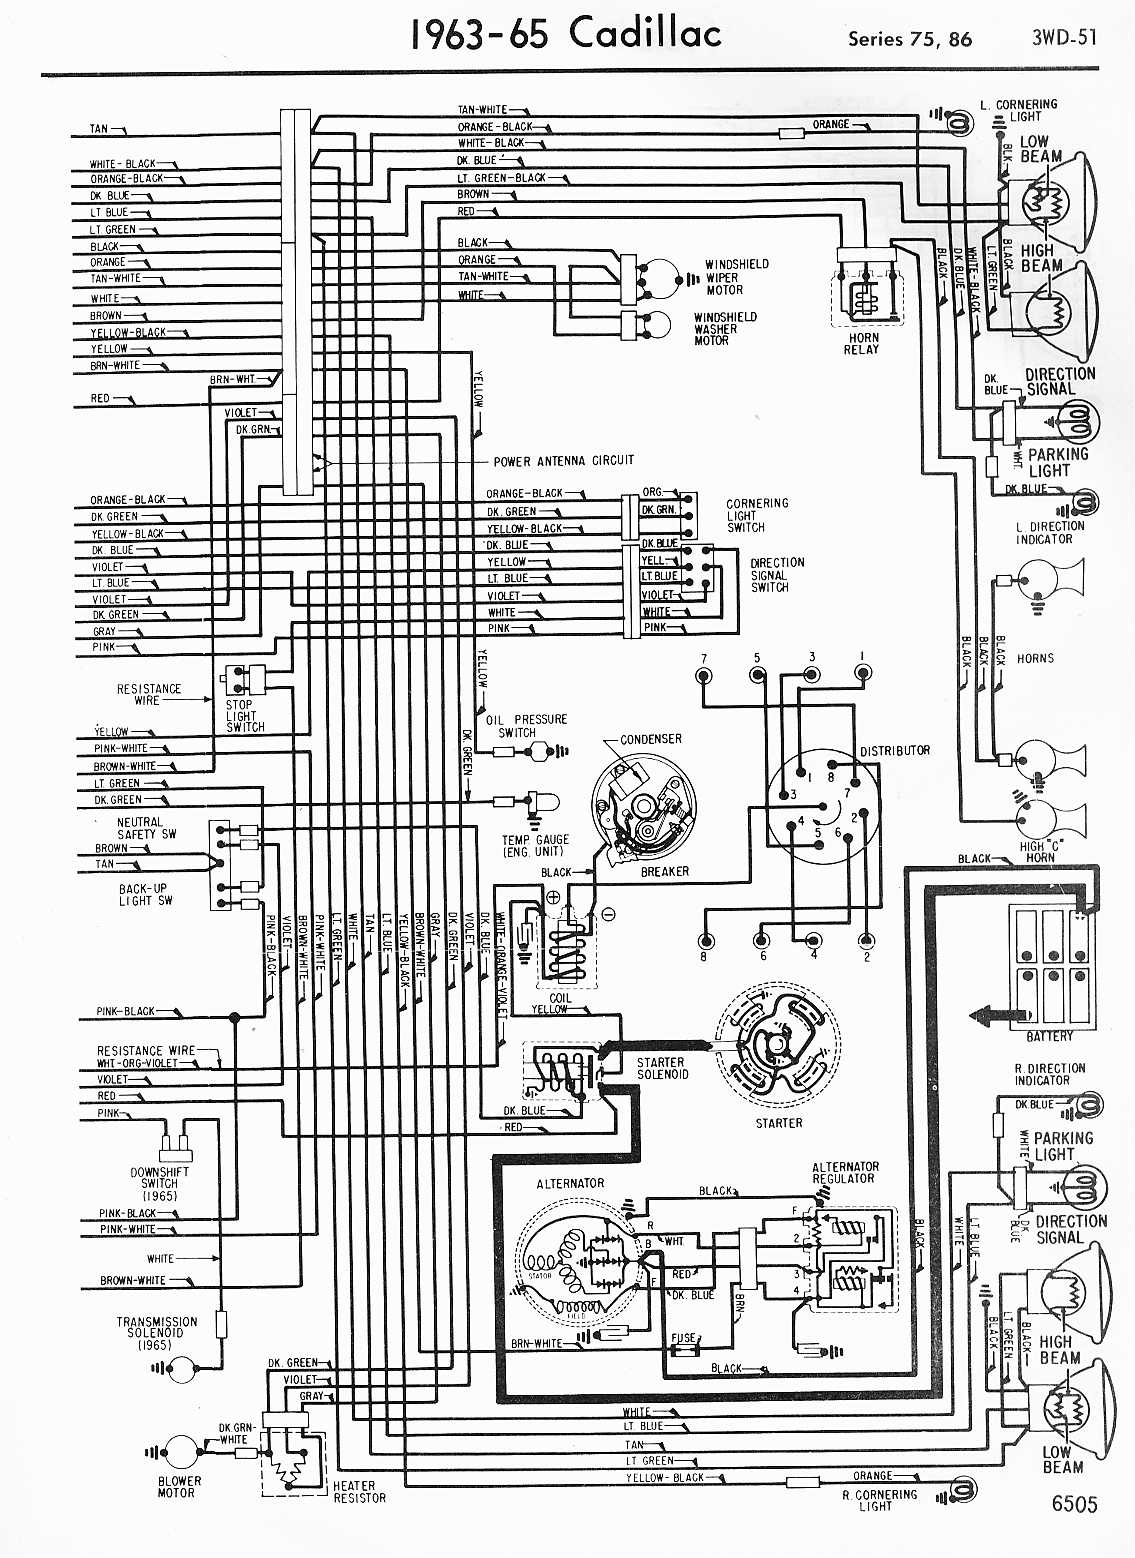 MWireCadi65_3WD 051 cadillac wiring harness ram truck wiring harness \u2022 wiring diagrams  at bakdesigns.co